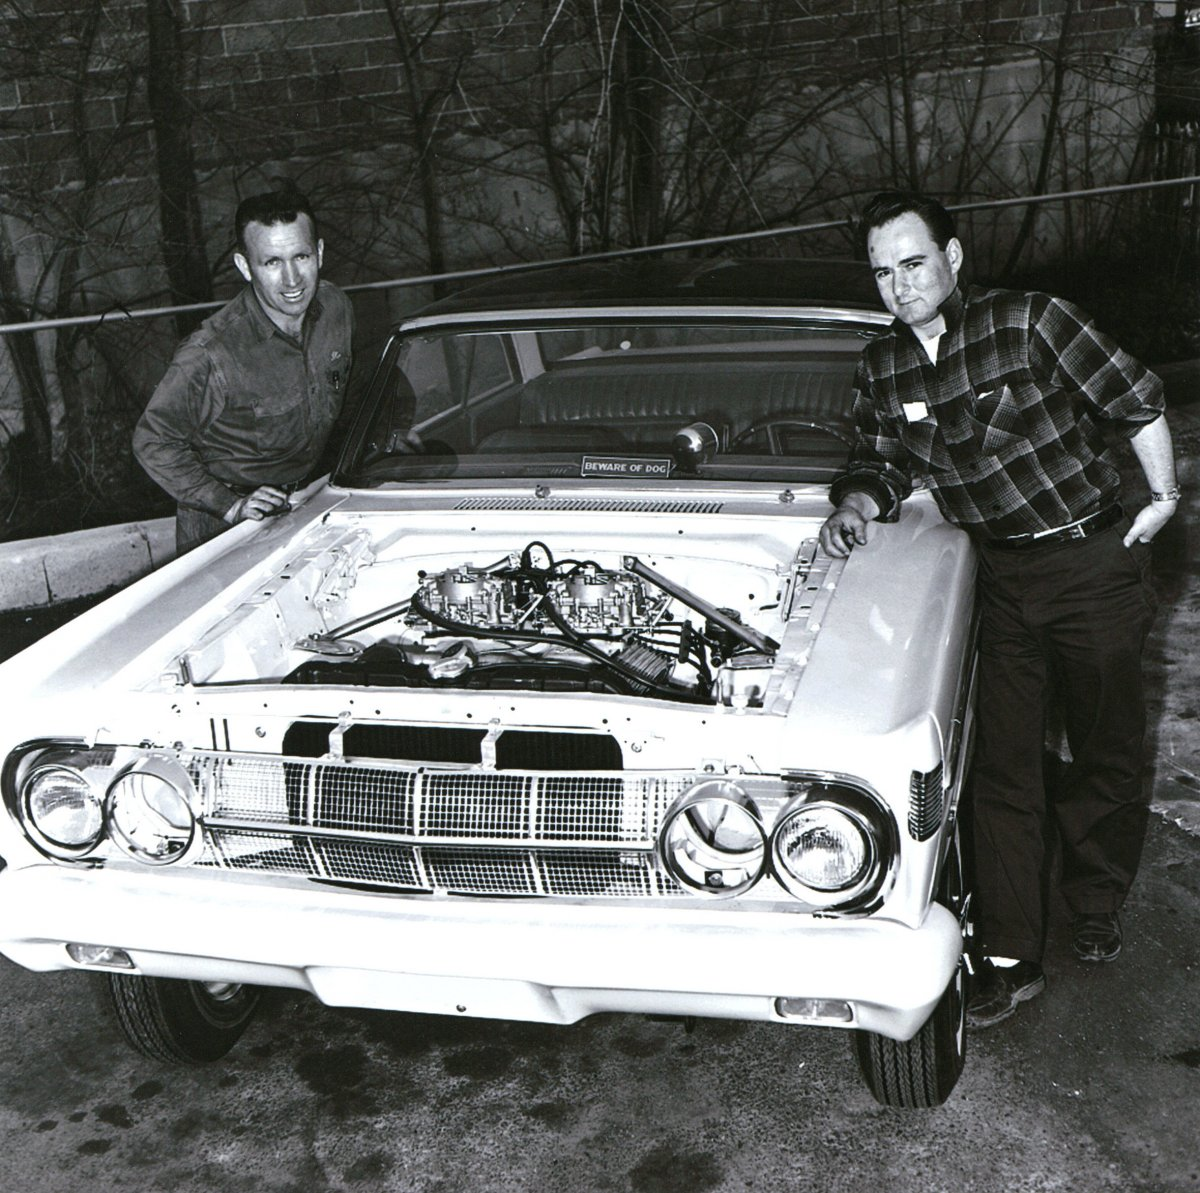 1964 AFX Comet-Hairy Canary Construction Photos0011.jpg